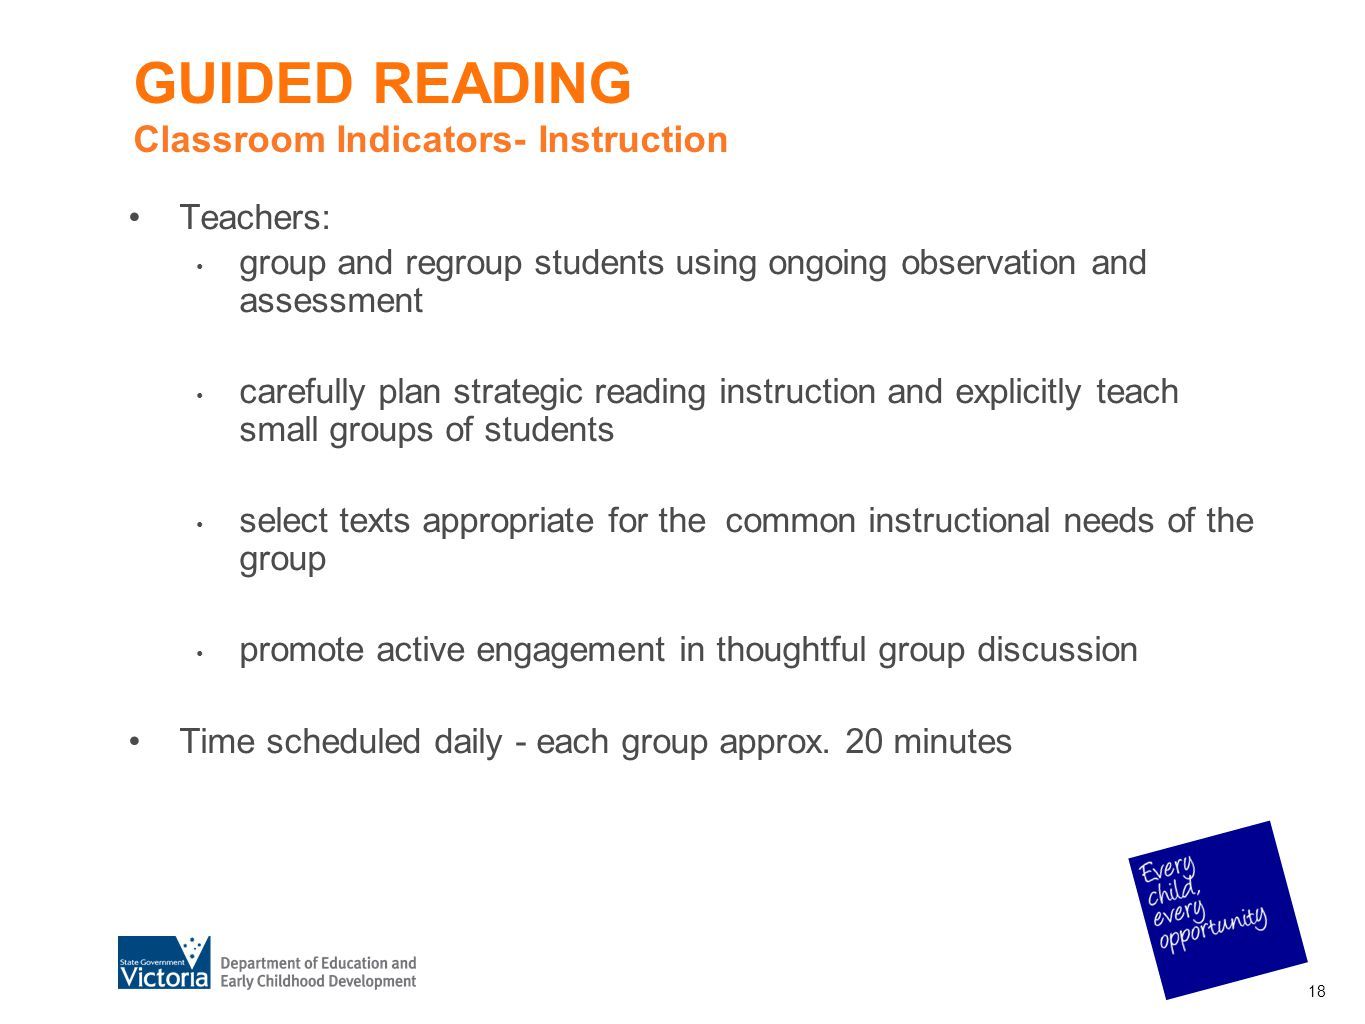 GUIDED READING Classroom Indicators- Instruction